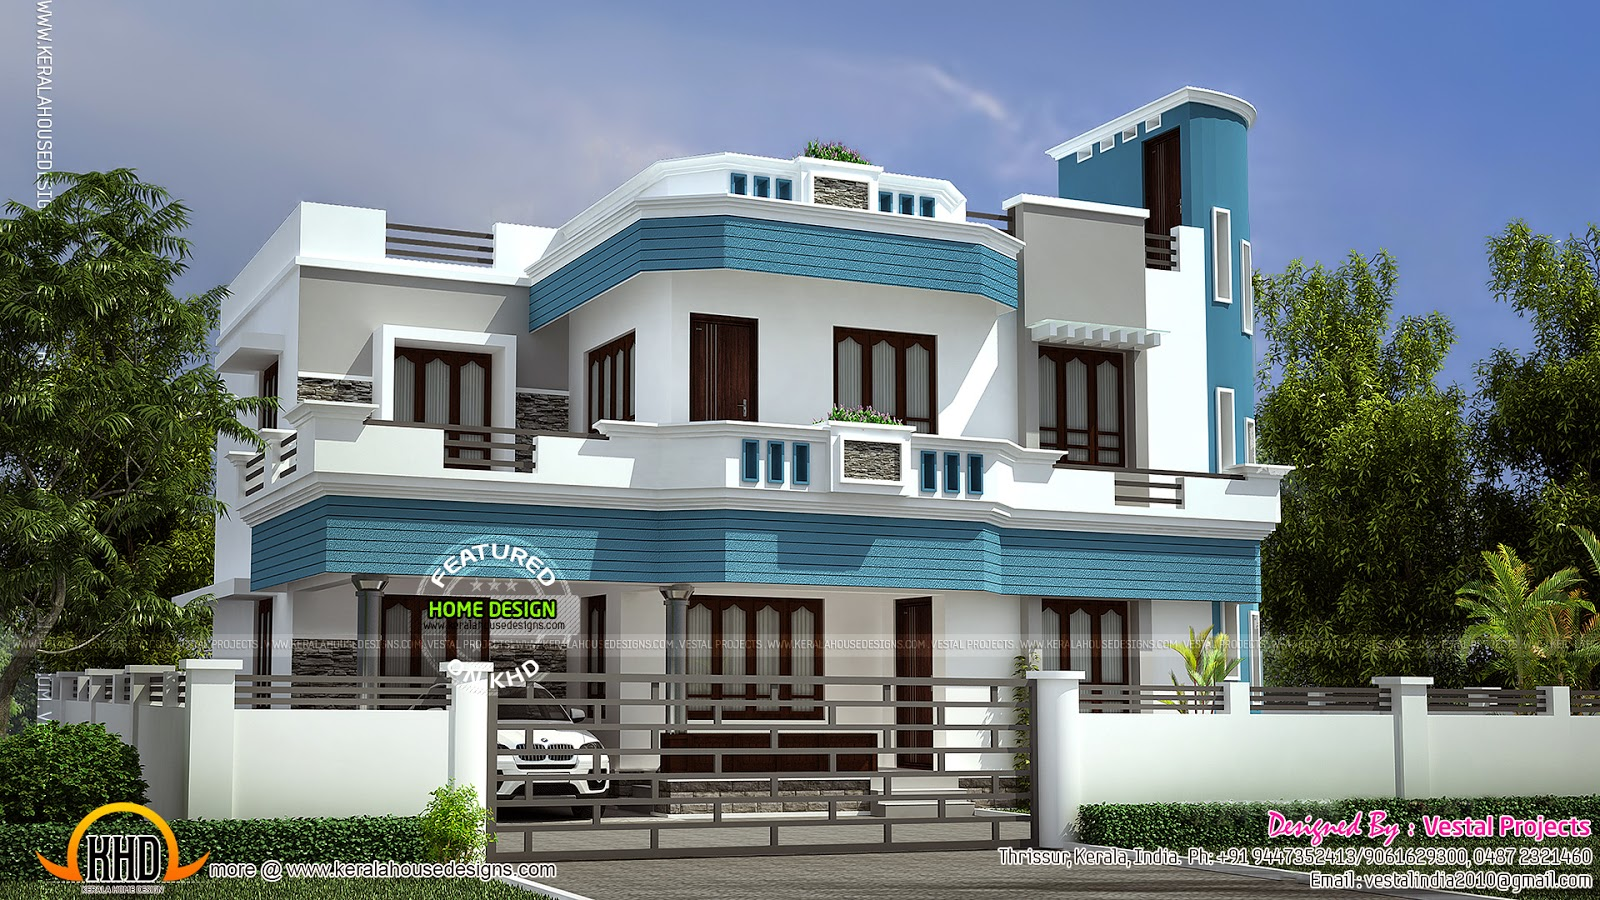 Awesome house by vestal projects kerala home design and for Projects house